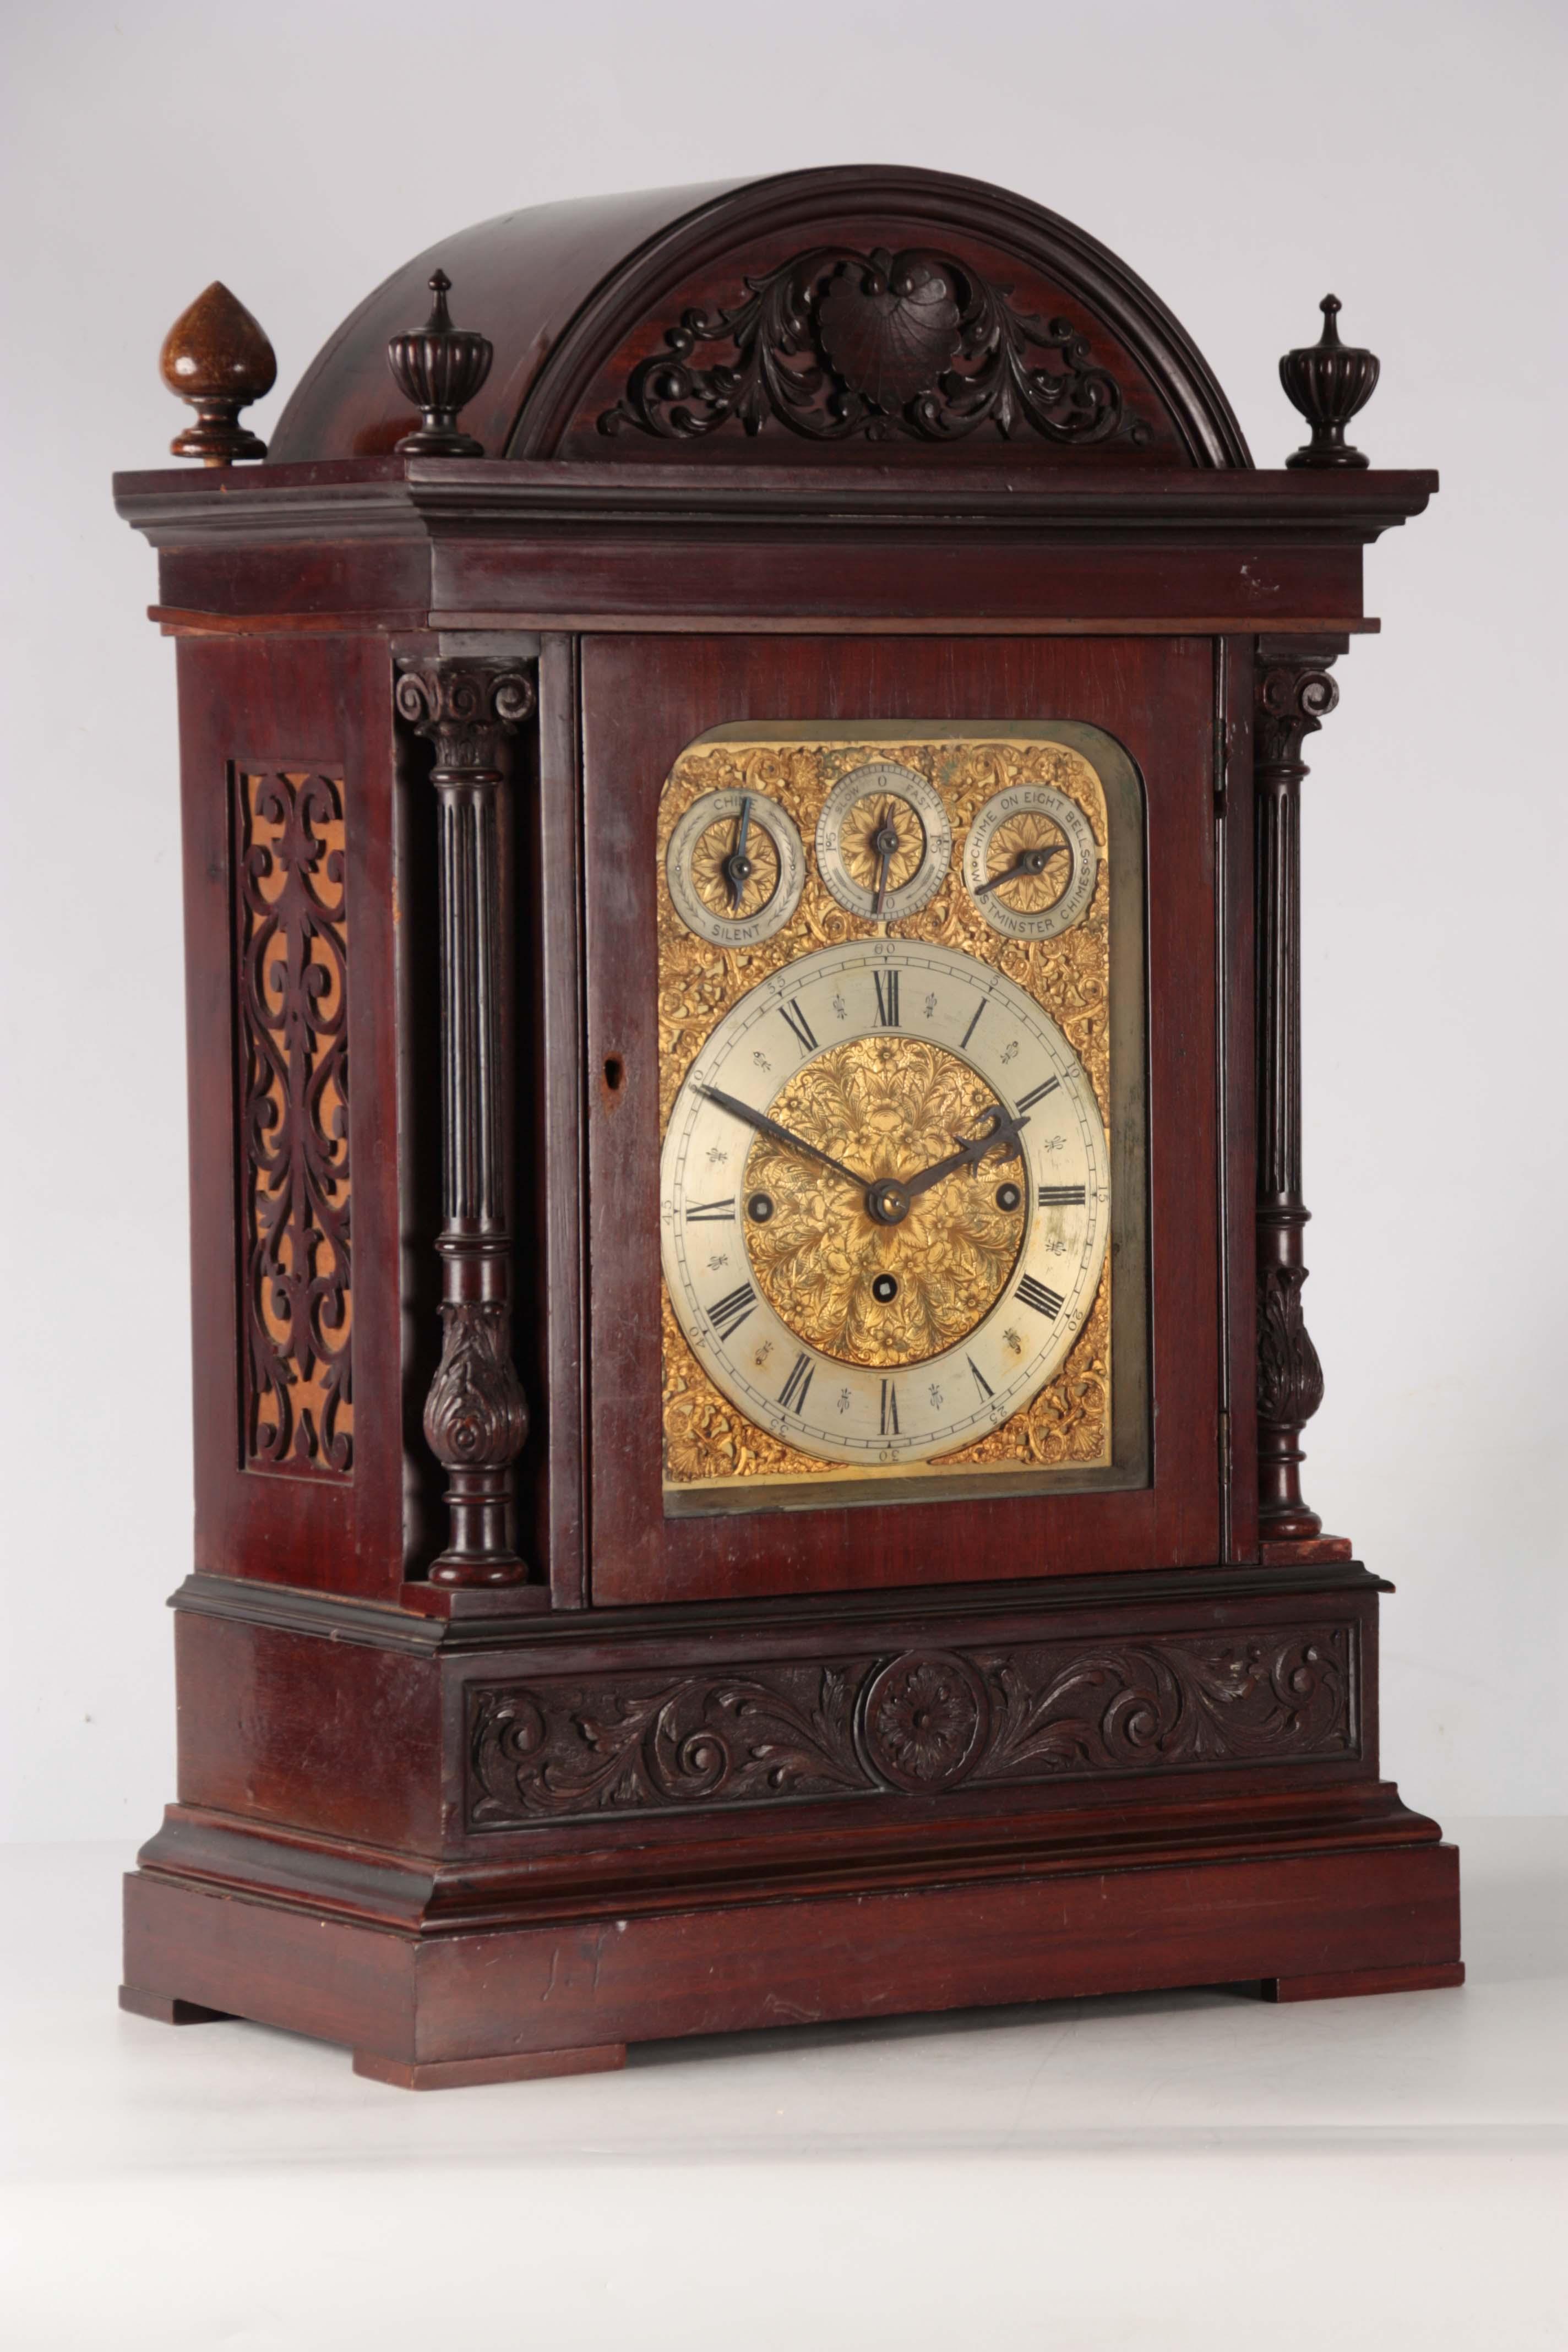 A LATE 19TH CENTURY QUARTER CHIMING TRIPLE FUSEE BRACKET CLOCK the large mahogany case with arched - Image 7 of 7